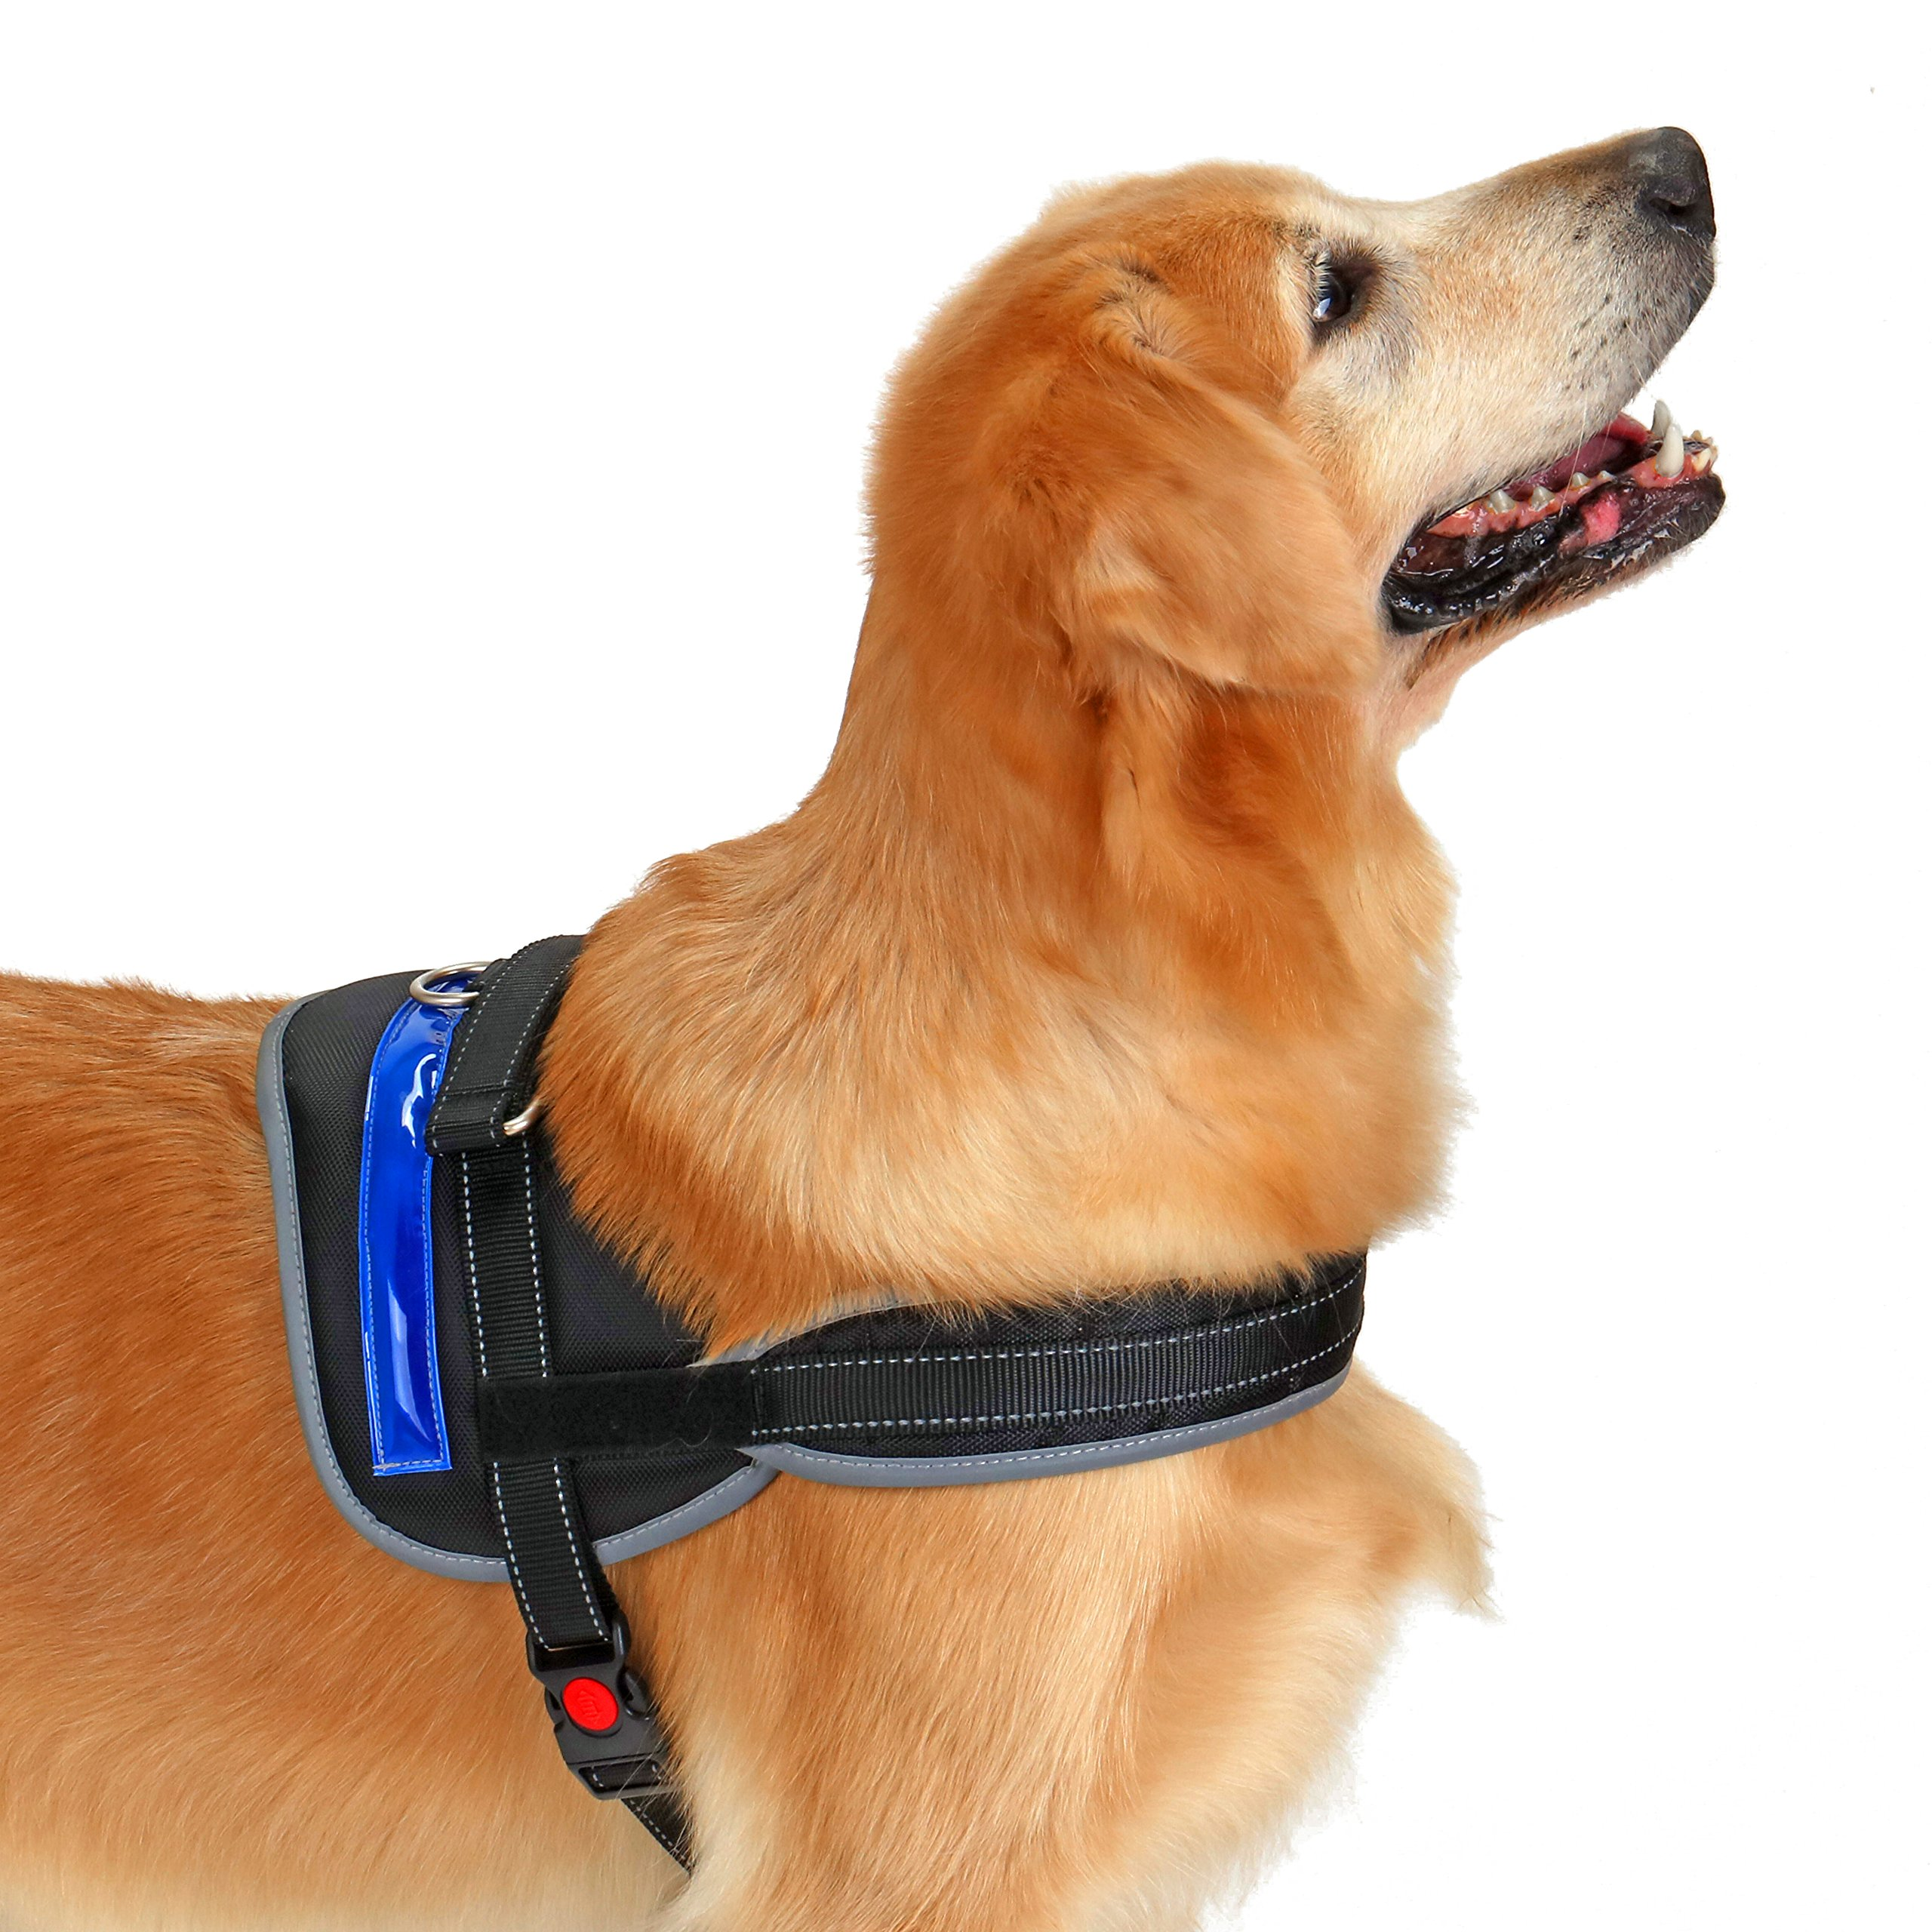 Heavy Duty Reflective Dog Harness with Safety Features [Premium Edition] Available in 4 Sizes, Specially Designed for Medium-Large Dog Breeds (Large, Electric Blue) by Pet Industries (Image #7)